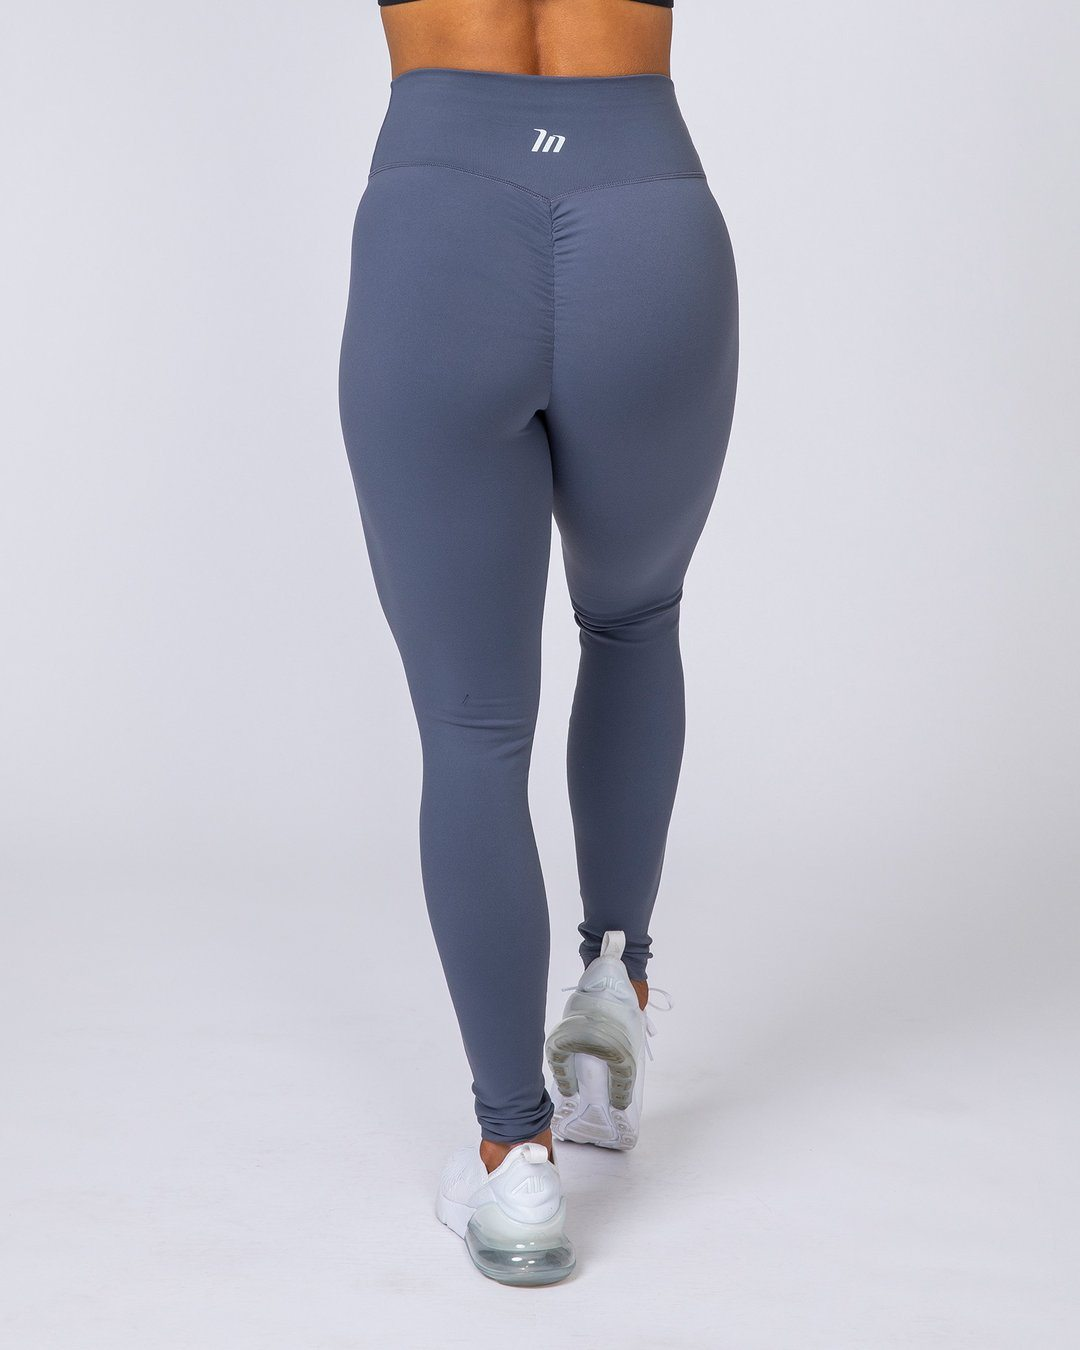 Muscle Nation Full Length Scrunch Leggings - Titanium